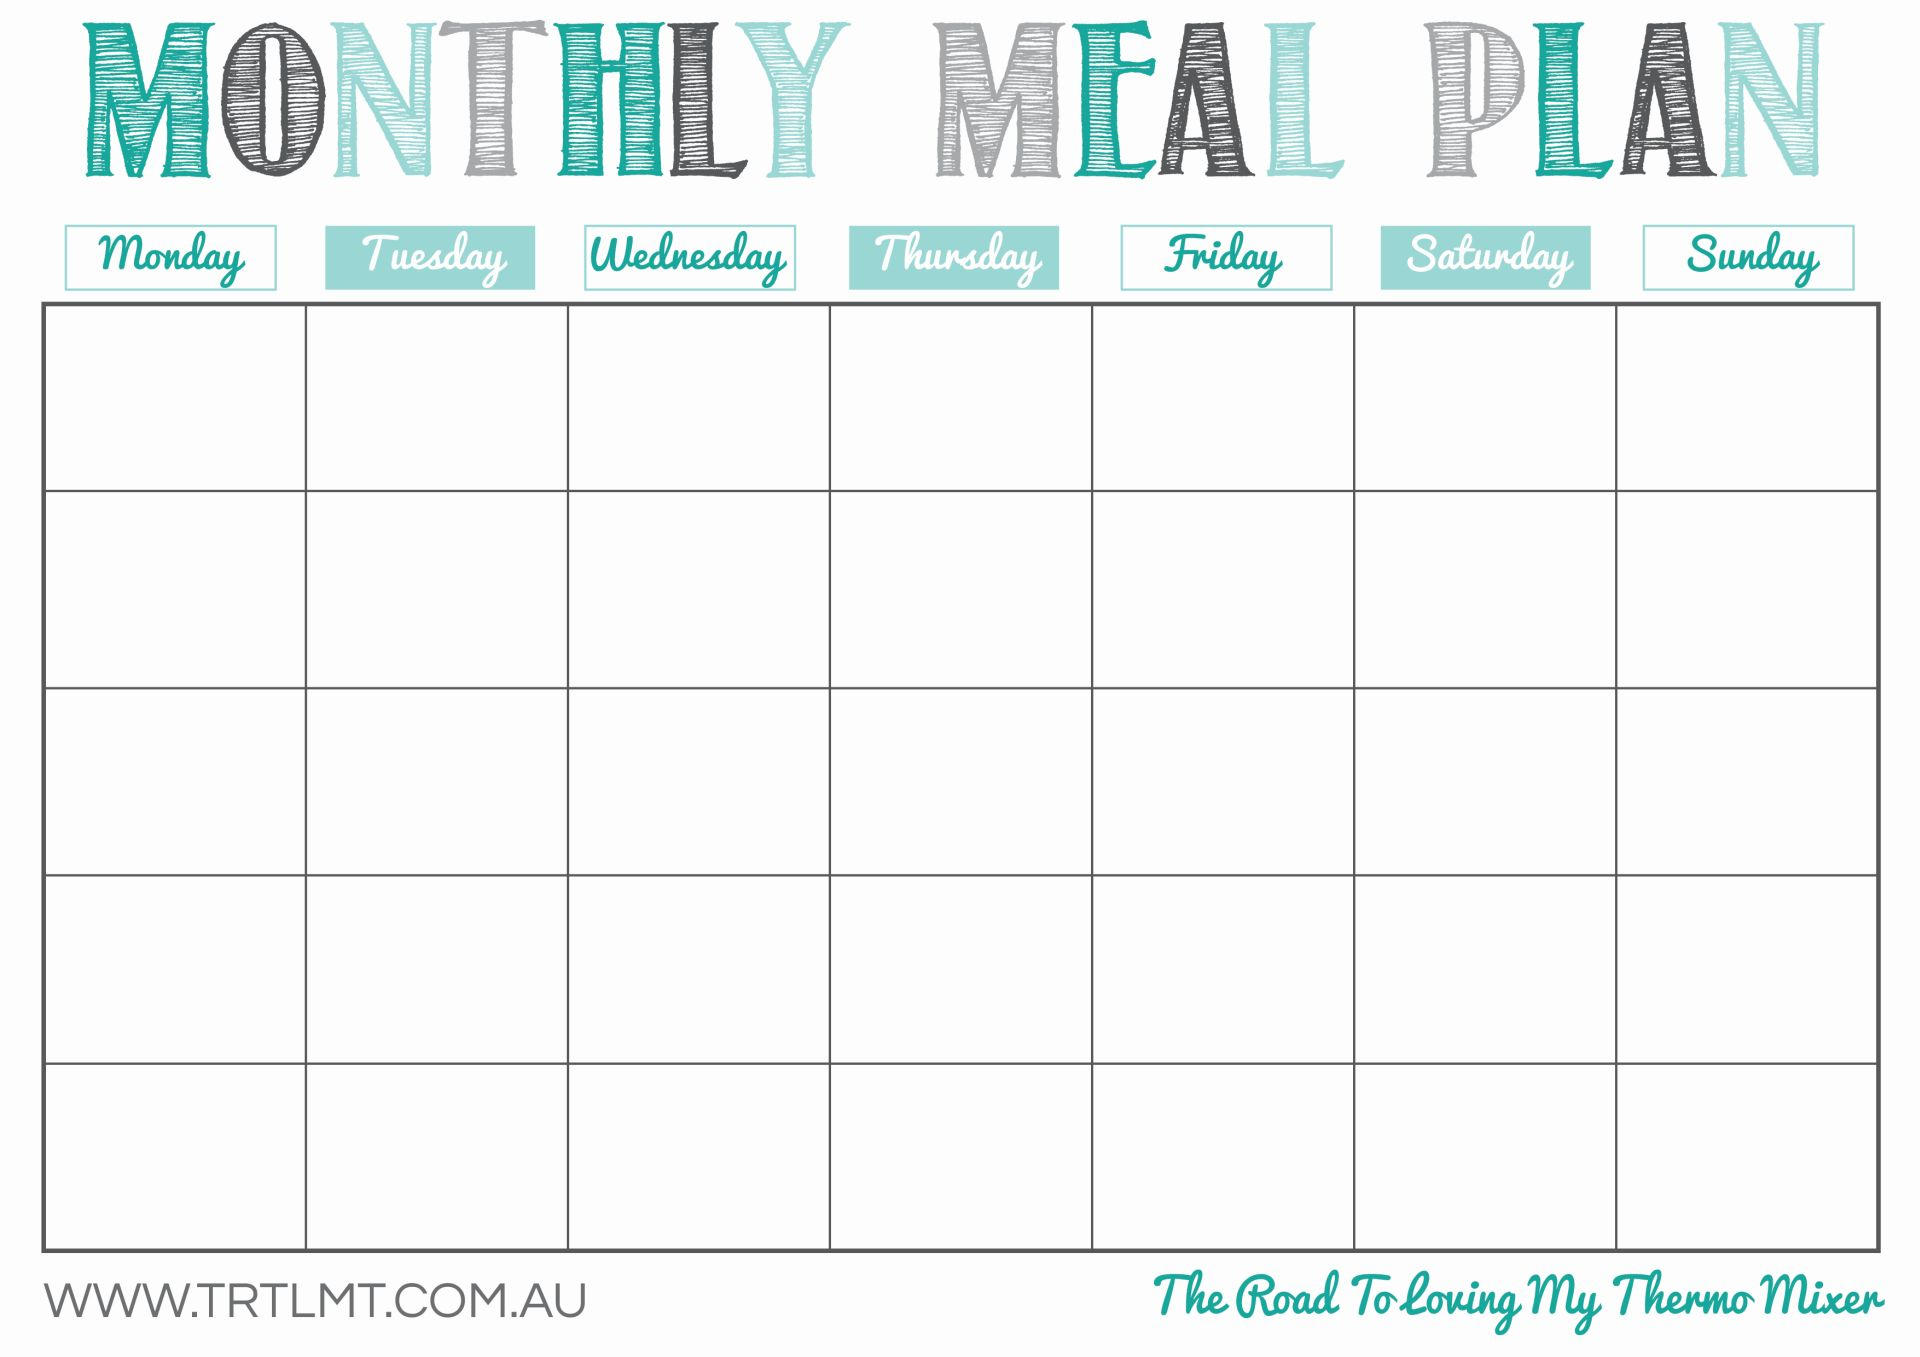 monthly food calendar template - Ideal.vistalist.co